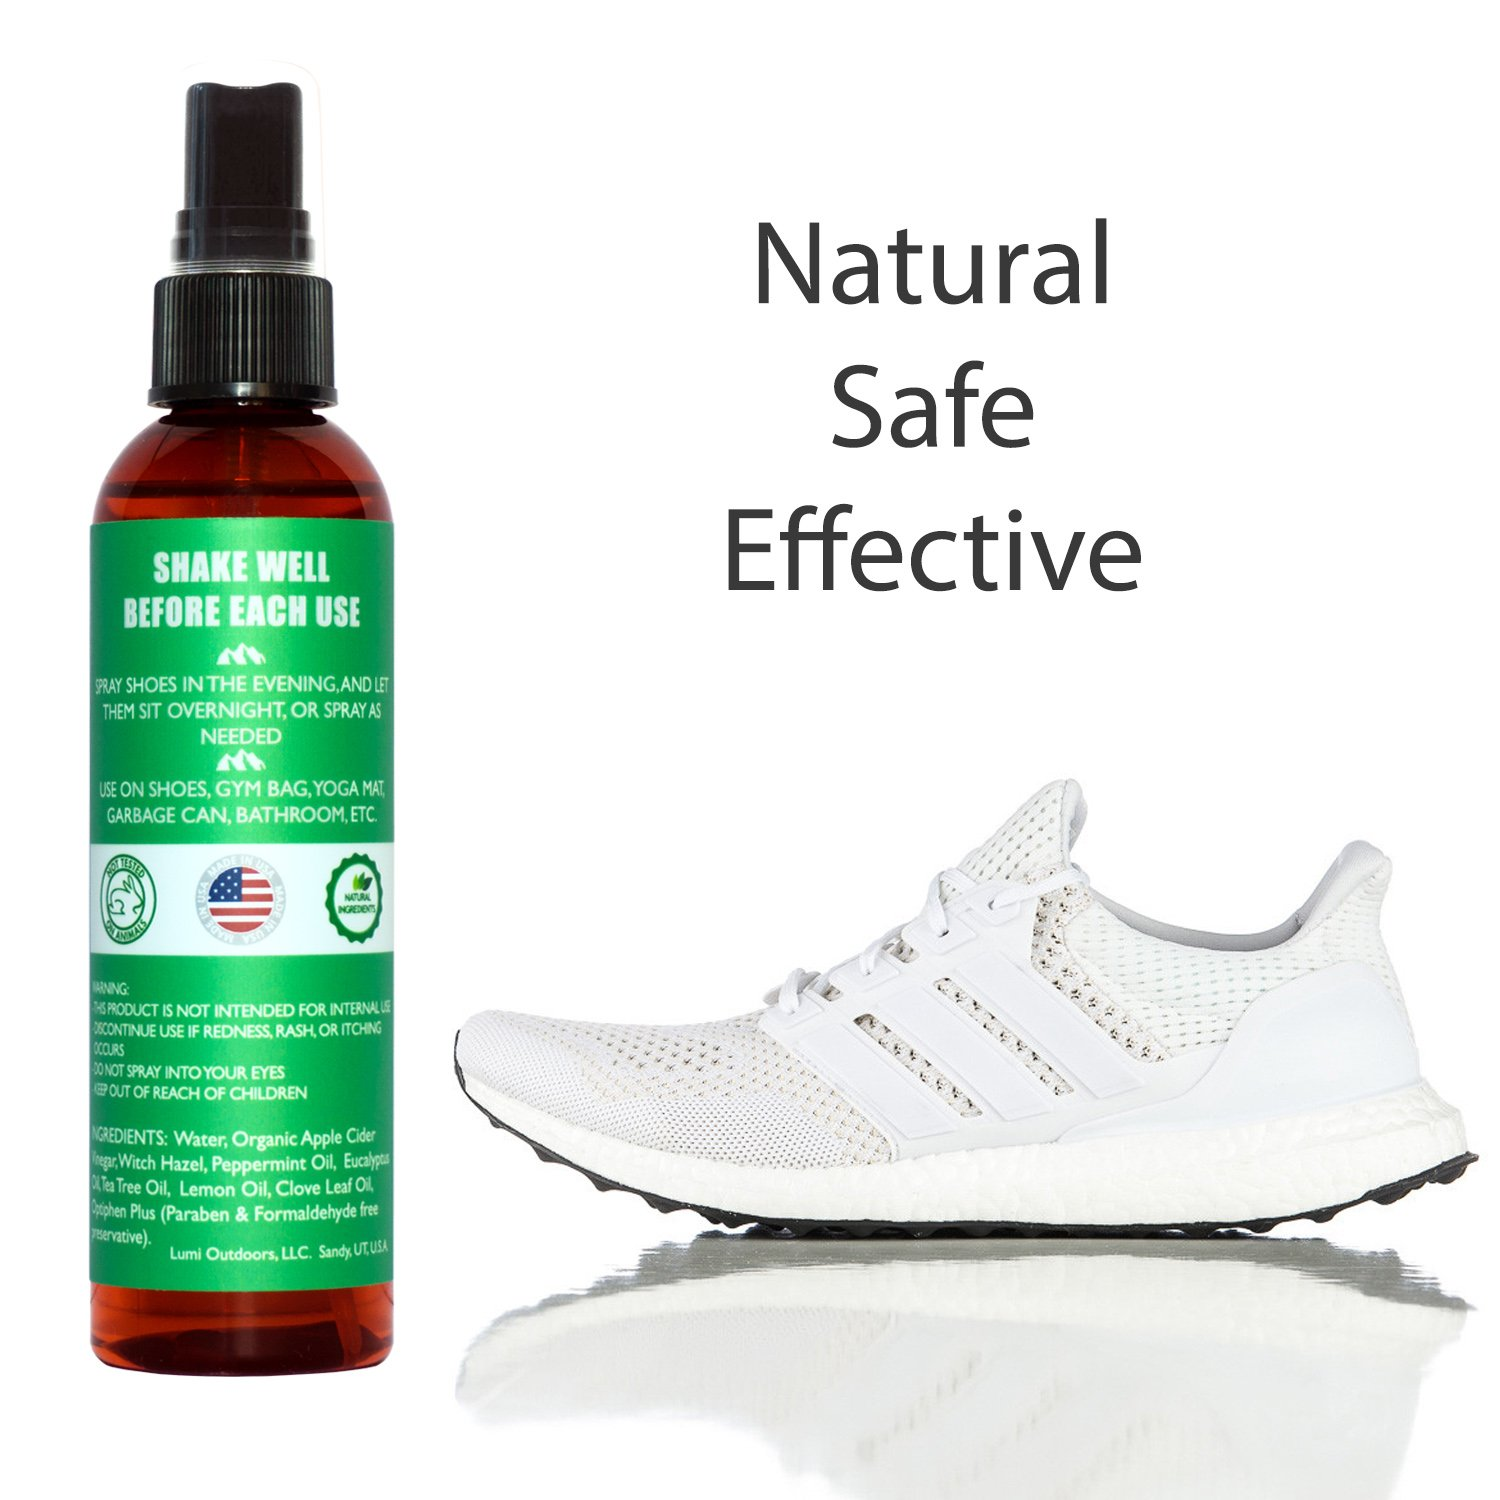 Amazon.com: Natural Shoe Deodorizer Spray and Foot Odor Eliminator - Extra  Strength Shoe Spray uses Essential Oils As Organic Deodorant - Peppermint,  ...